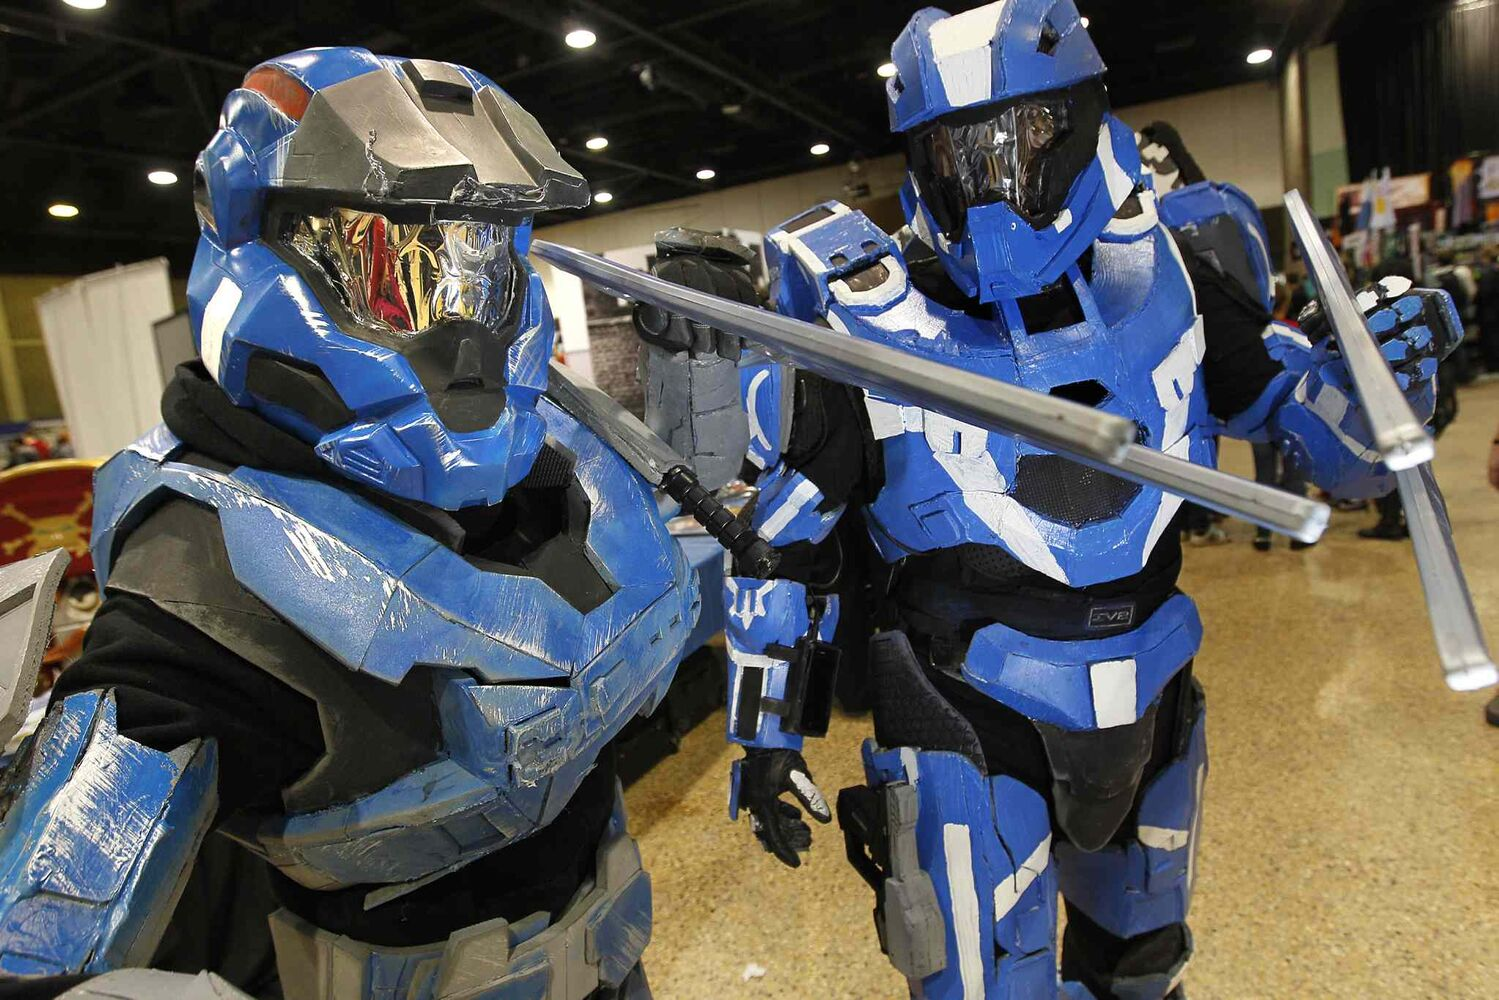 Raymond Smith (left) is dressed as Carter from Halo Reach, while Joshua Cook sports a Spartan Ops costume from Halo 4. (John Woods / Winnipeg Free Press)